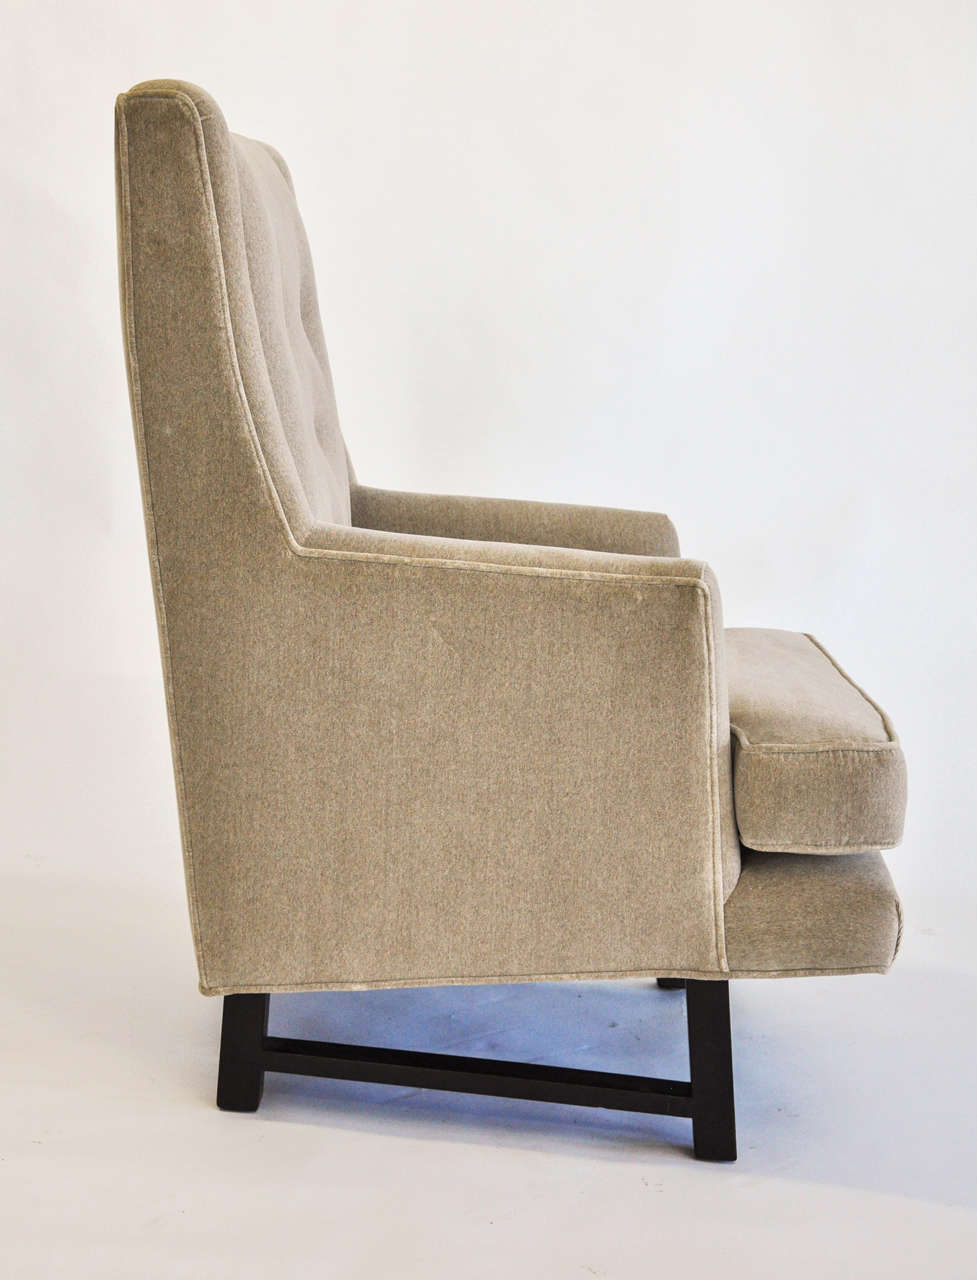 Foam Armchair Designed by Edward Wormley for Dunbar For Sale